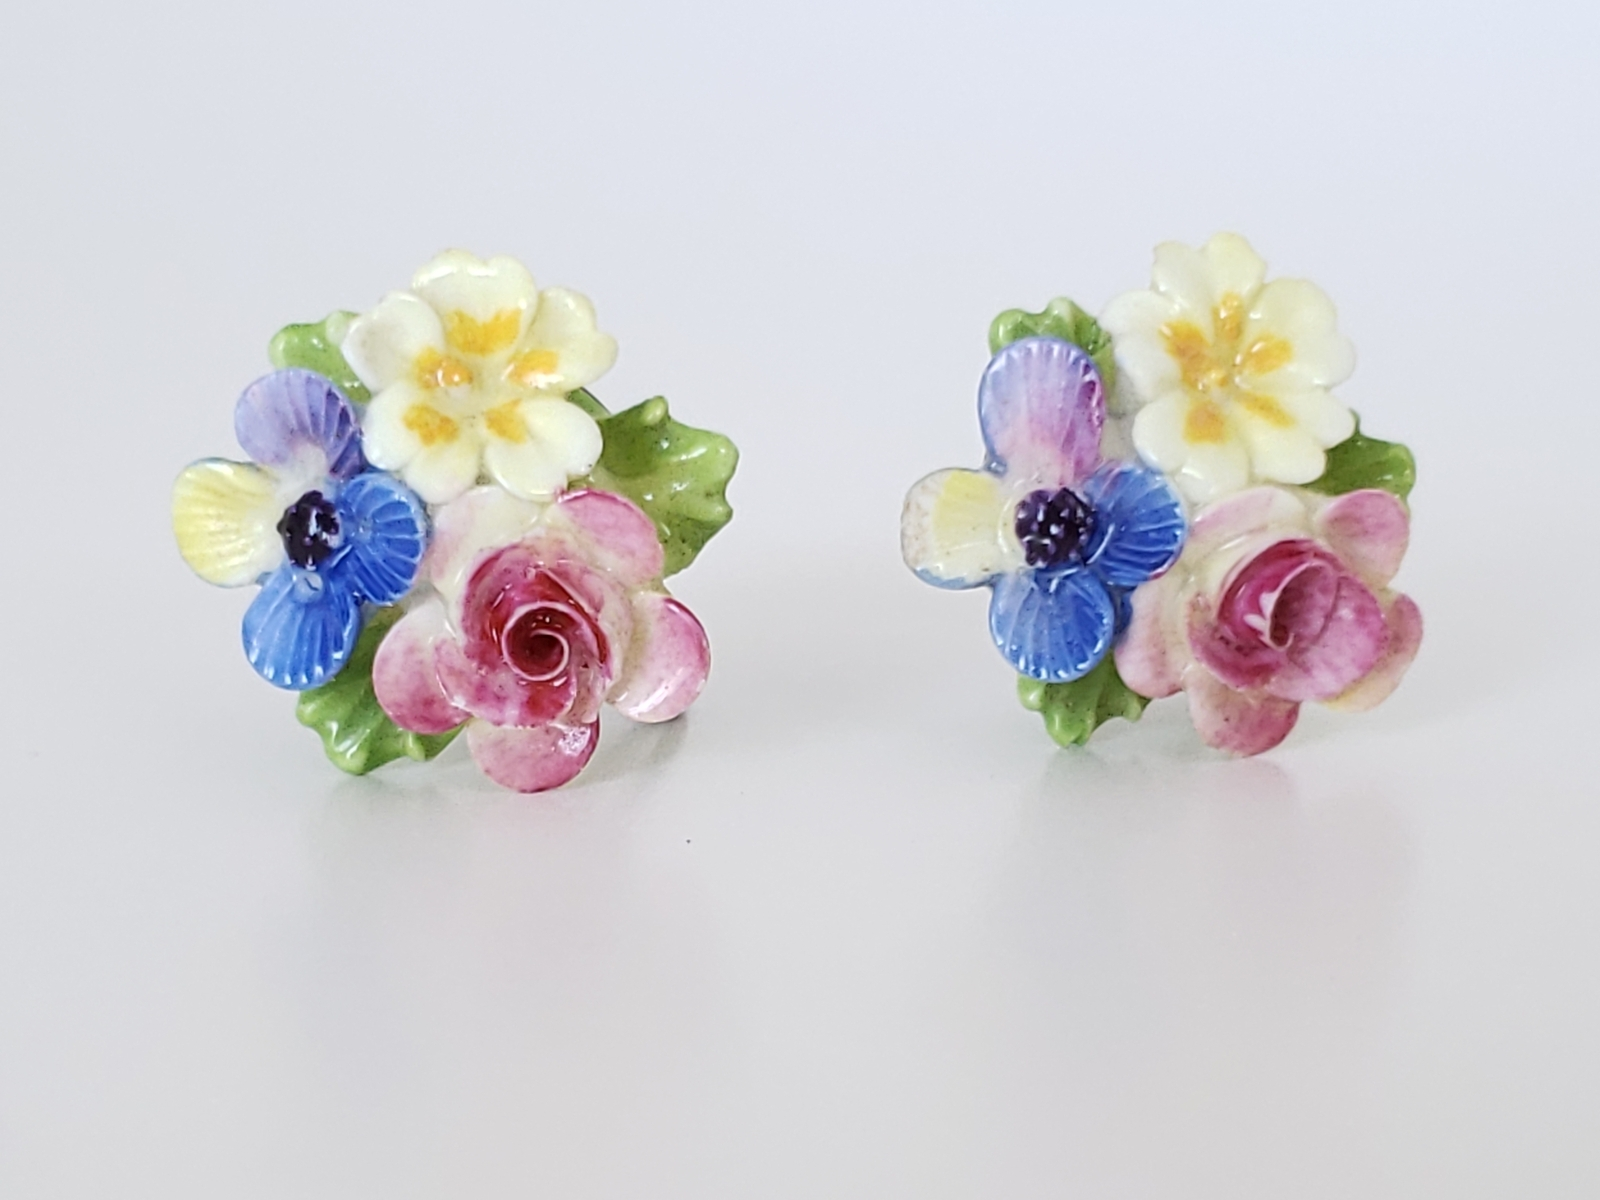 Primary image for Vintage Porcelain Flower Cluster Bouquet Earrings, Screw Backs, Colorful Floral